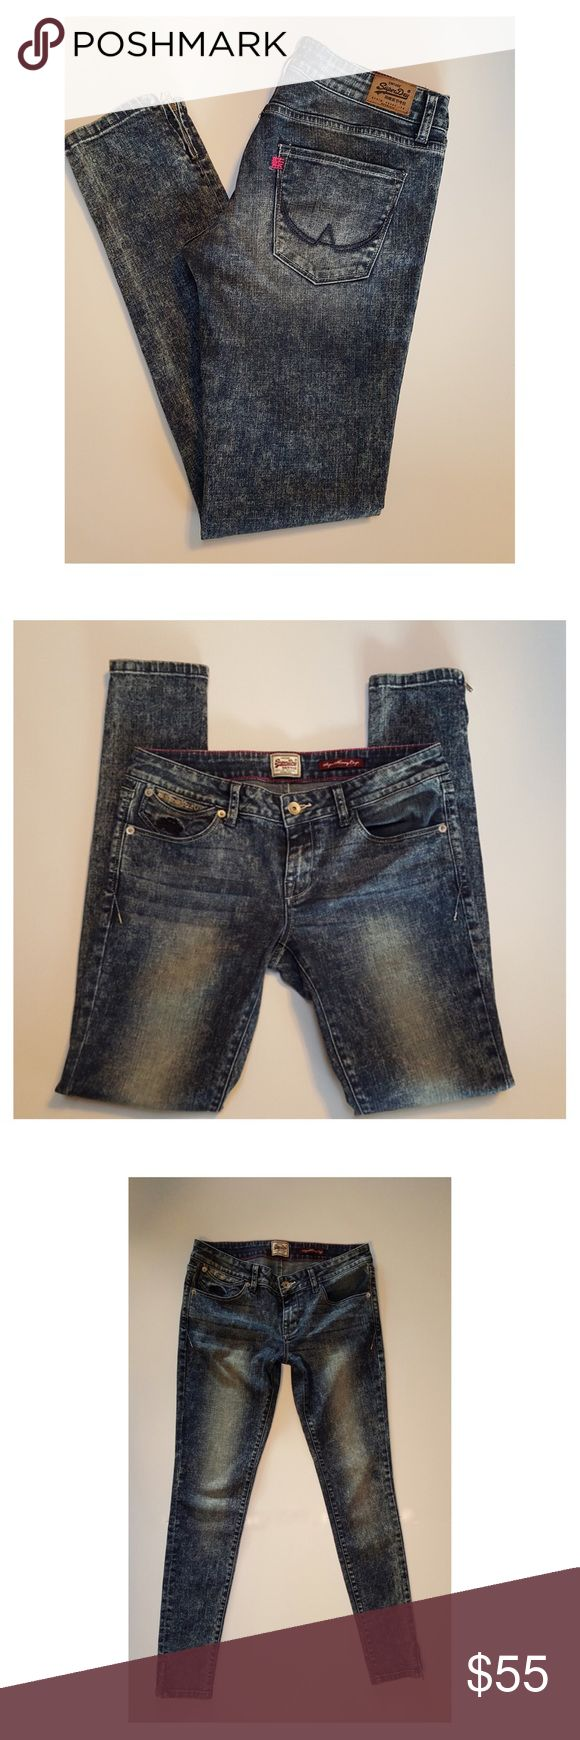 """Superdry Super Skinny Crop Jeans * Brand: Superdry  * Style: Super Skinny Jeans  * Size: 28W * Color: Blue  * Fabric: 99% Cotton 1%Spandex * Details: 5 Pocket Zip Fly Embroidered logo on coin pocket Zipper ankles. * Waist: 14"""" flat across * Hips: 17.5"""" flat across  * Front Rise: 7""""  * Inseam: 30"""" * Condition: Excellent prewashed. NO inside fabric tag* superdry Jeans Ankle & Cropped"""